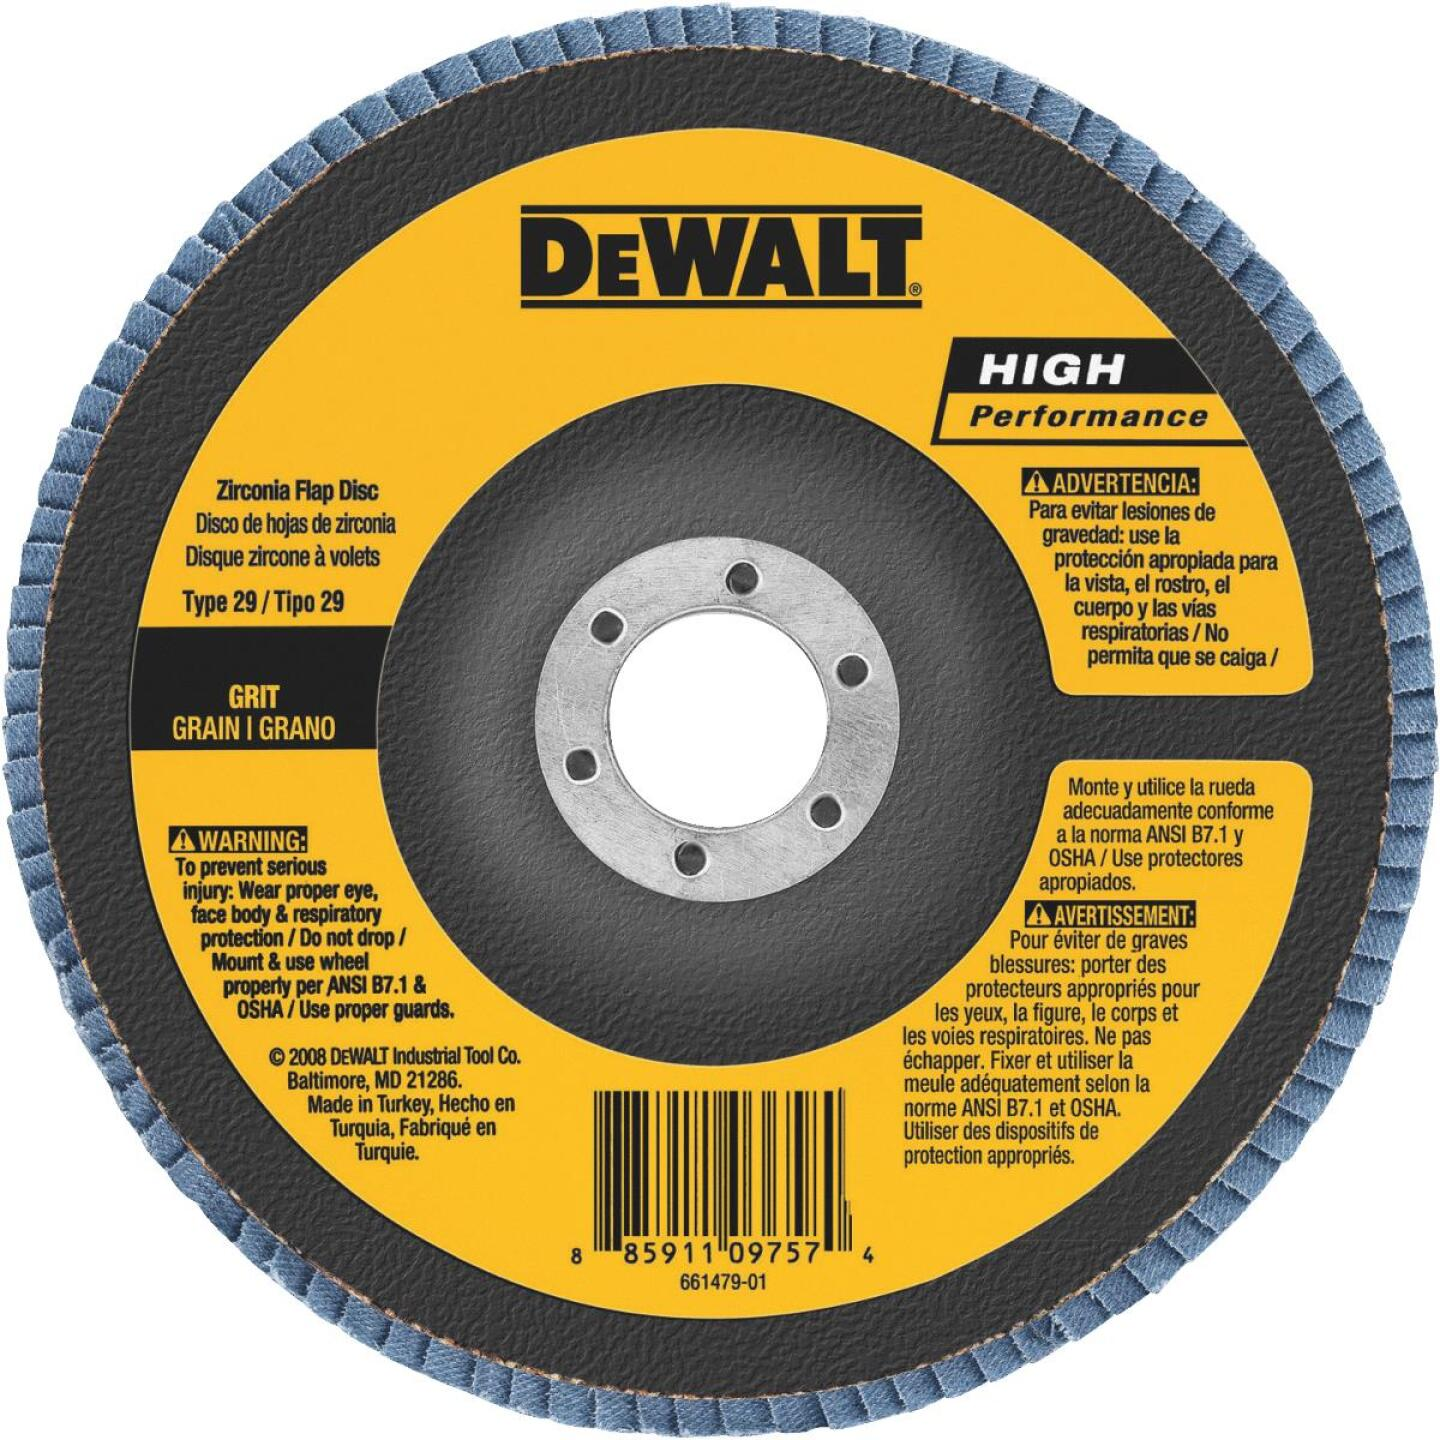 DeWalt High Performance 6 In. x 5/8 In.-11 60-Grit Type 29 Angle Grinder Flap Disc Image 1